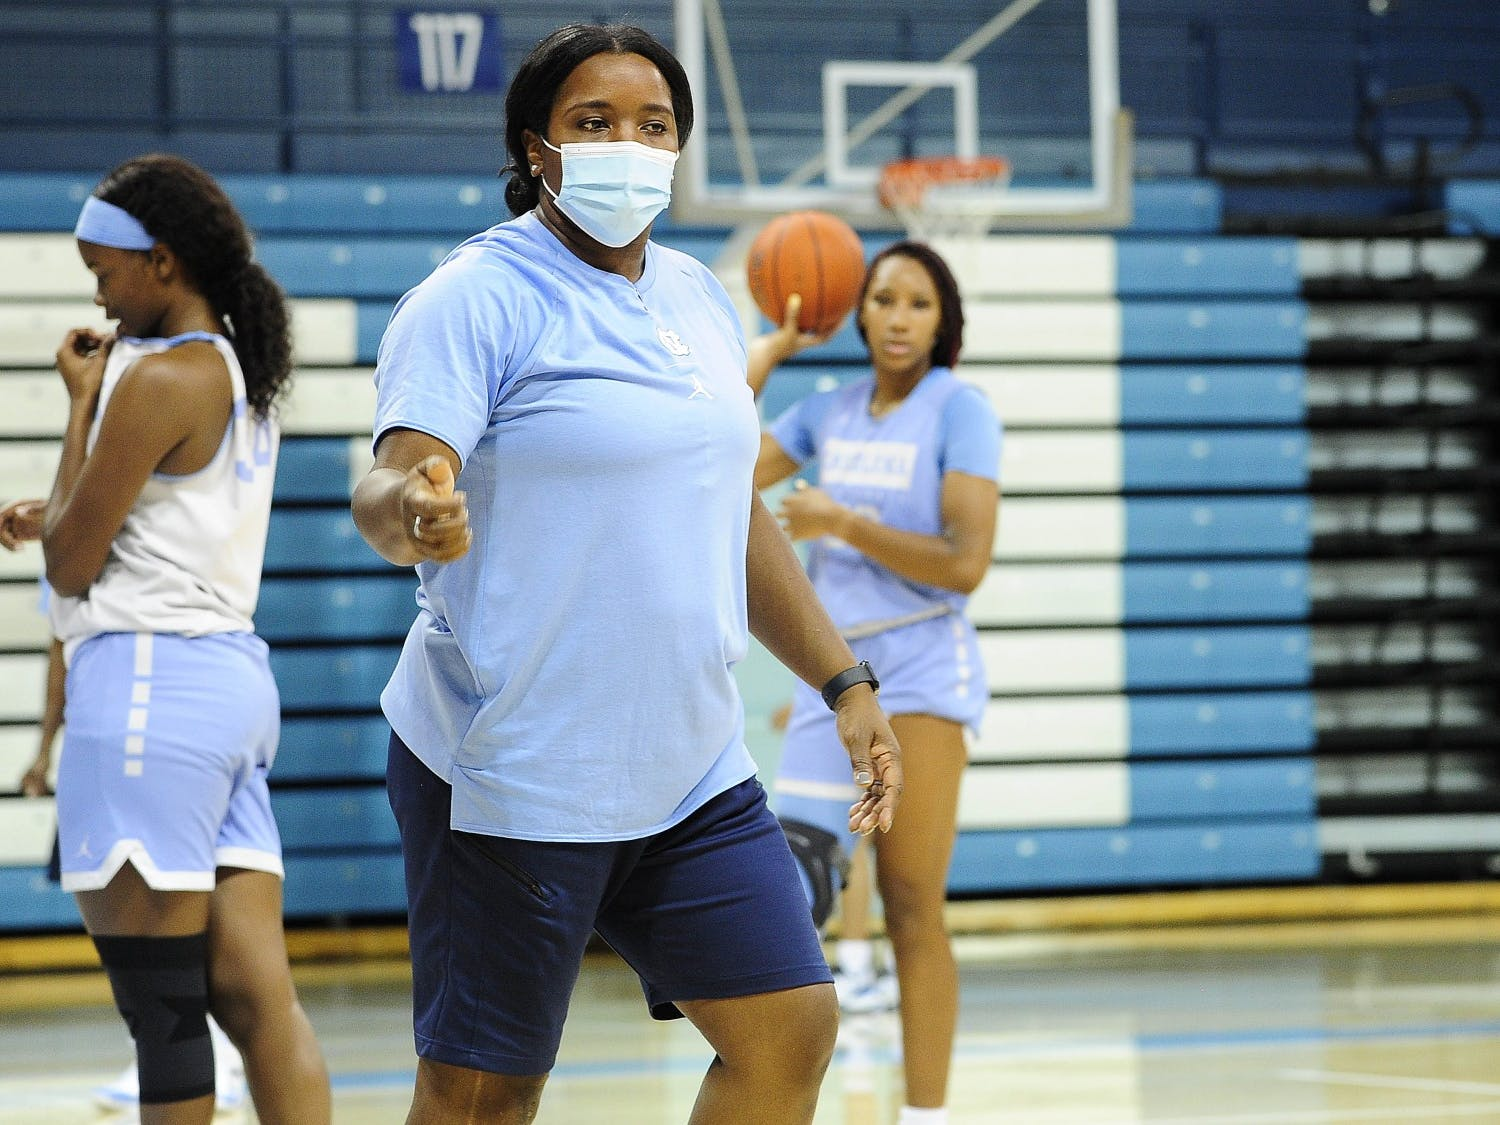 UNC women's basketball coach Joanne Aluka-White coaches at a preseason practice in Carmichael Arena, September 16, 2020. Photo courtesy of Dana Gentry/UNC Athletic Communications.